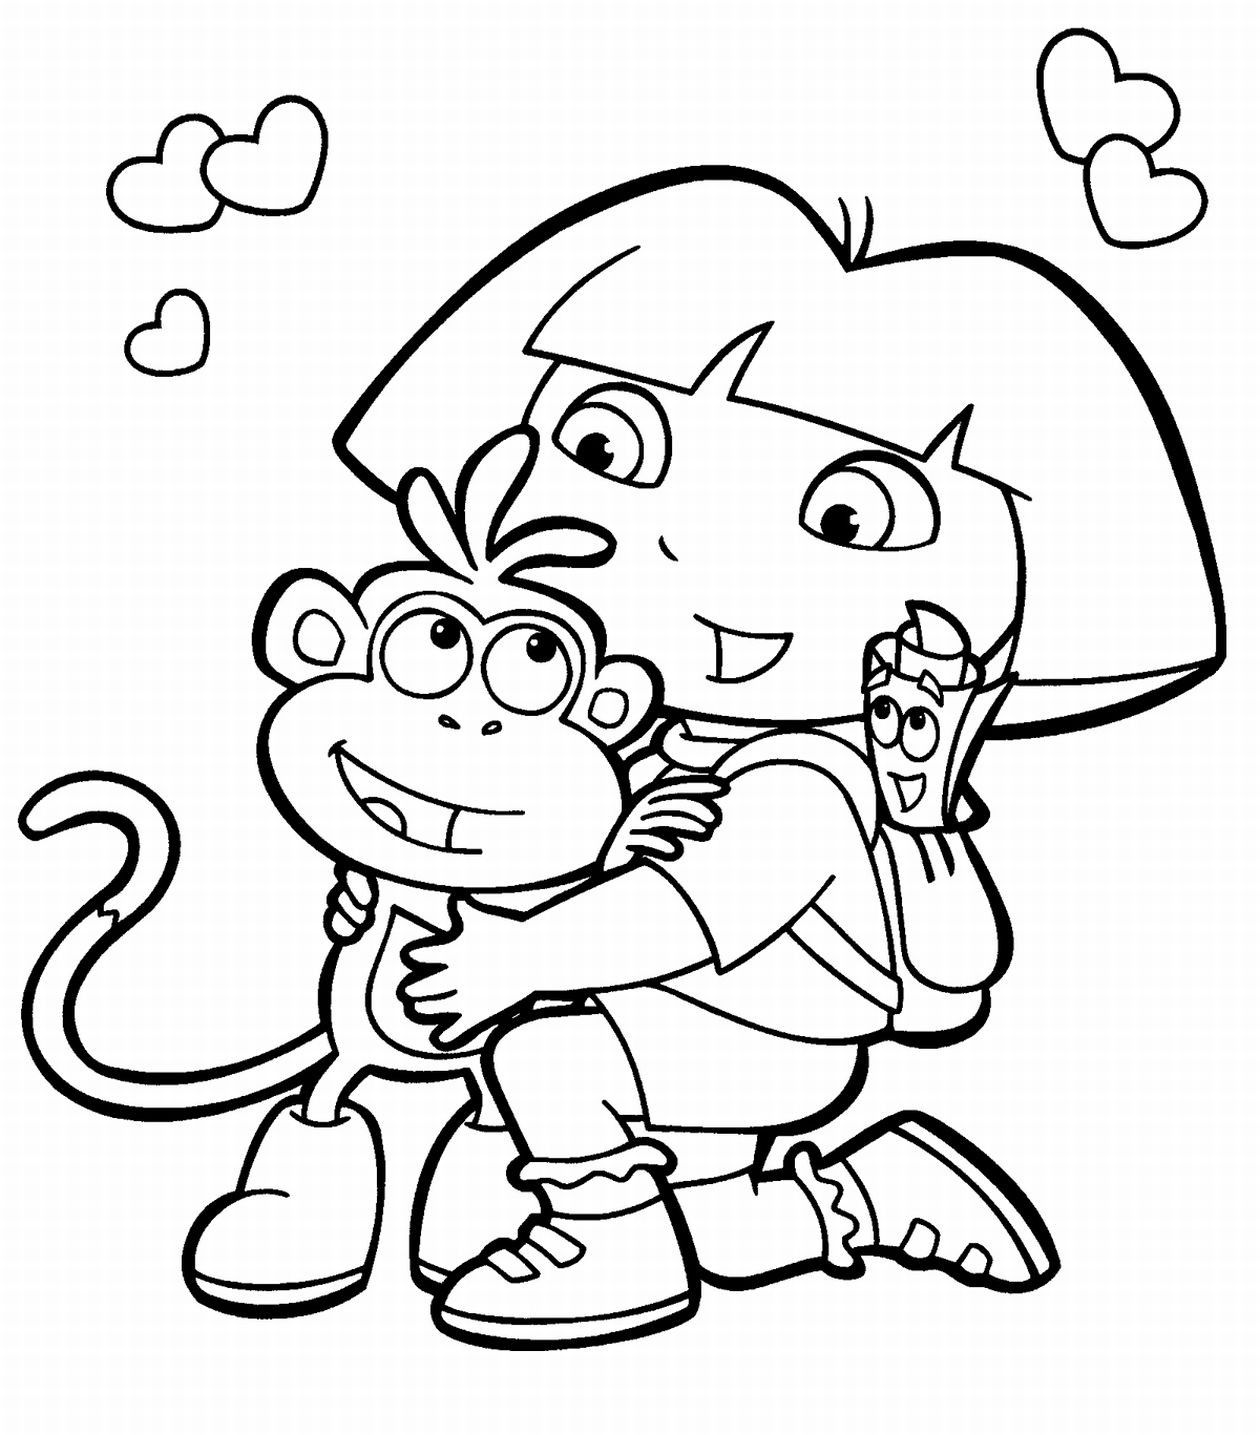 free kids printable coloring pages freecoloringpage info - Character Coloring Pages Kids